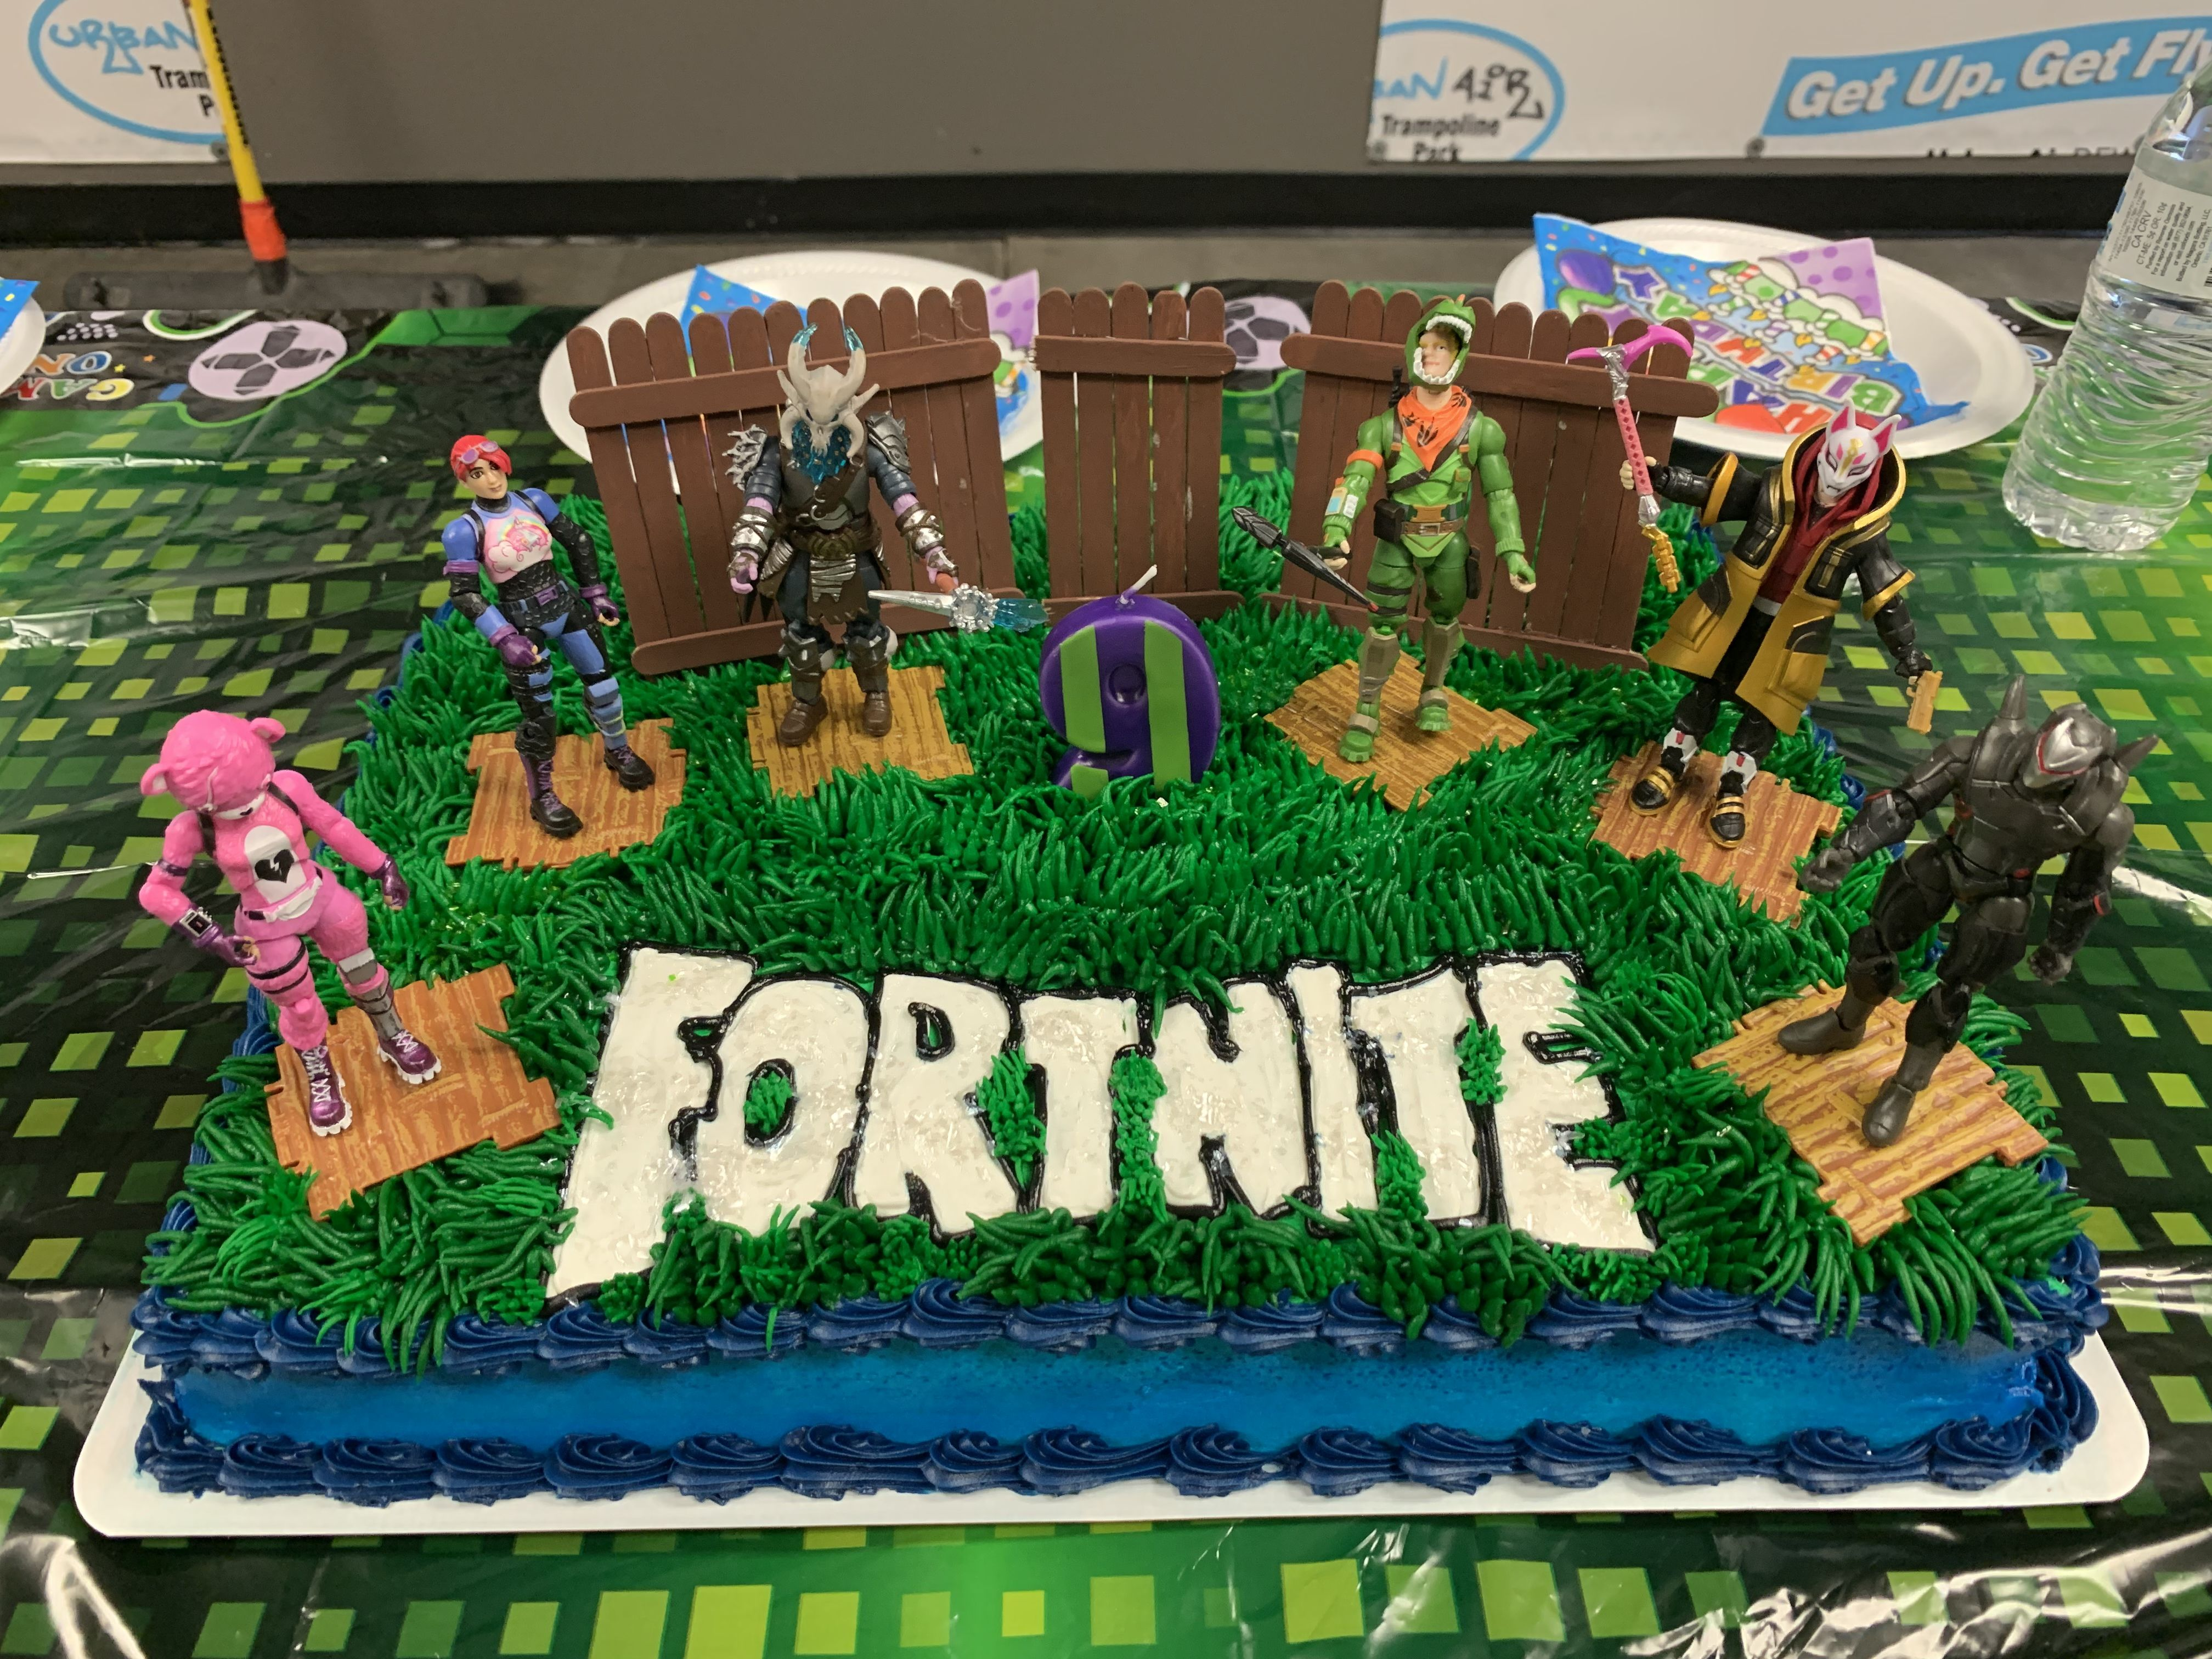 Don't pay hundreds for a custom cake! I bought this cake